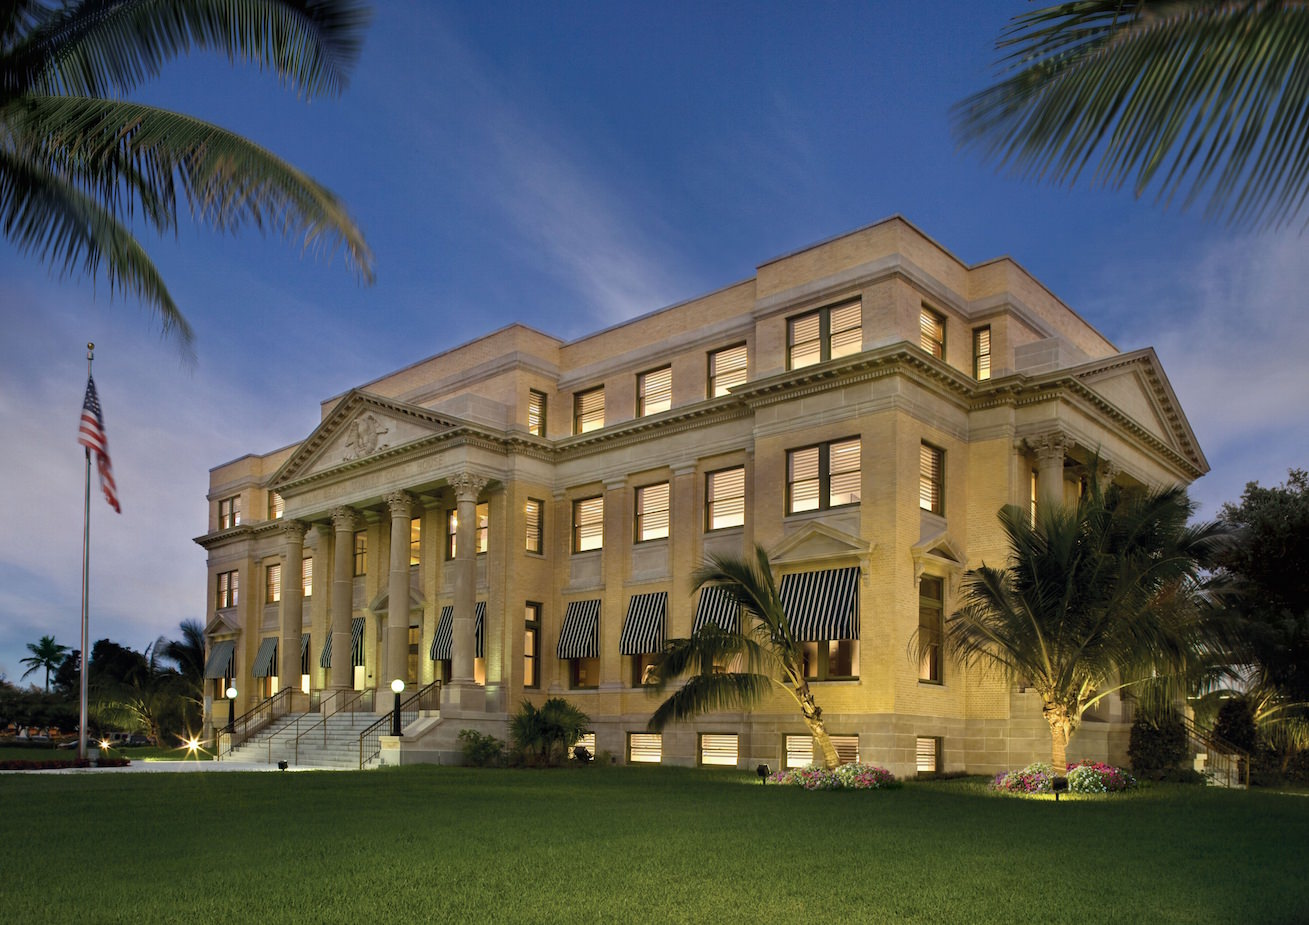 Historical-Society-of-Palm-Beach-County - palm beach